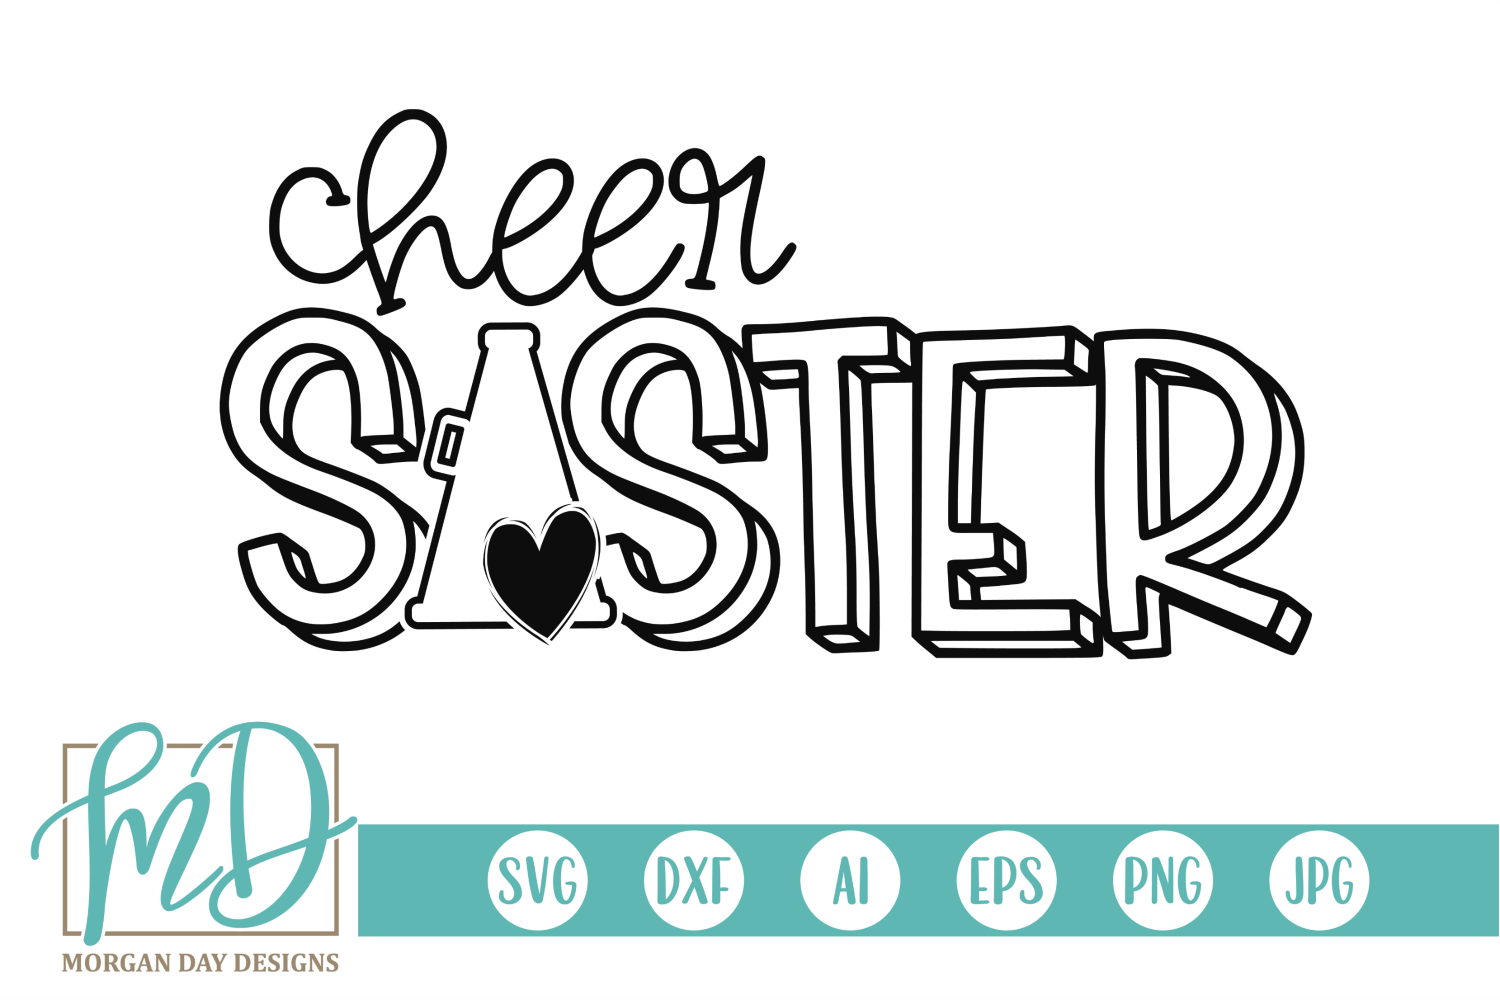 Download Free Cheer Sister Graphic By Morgan Day Designs Creative Fabrica for Cricut Explore, Silhouette and other cutting machines.